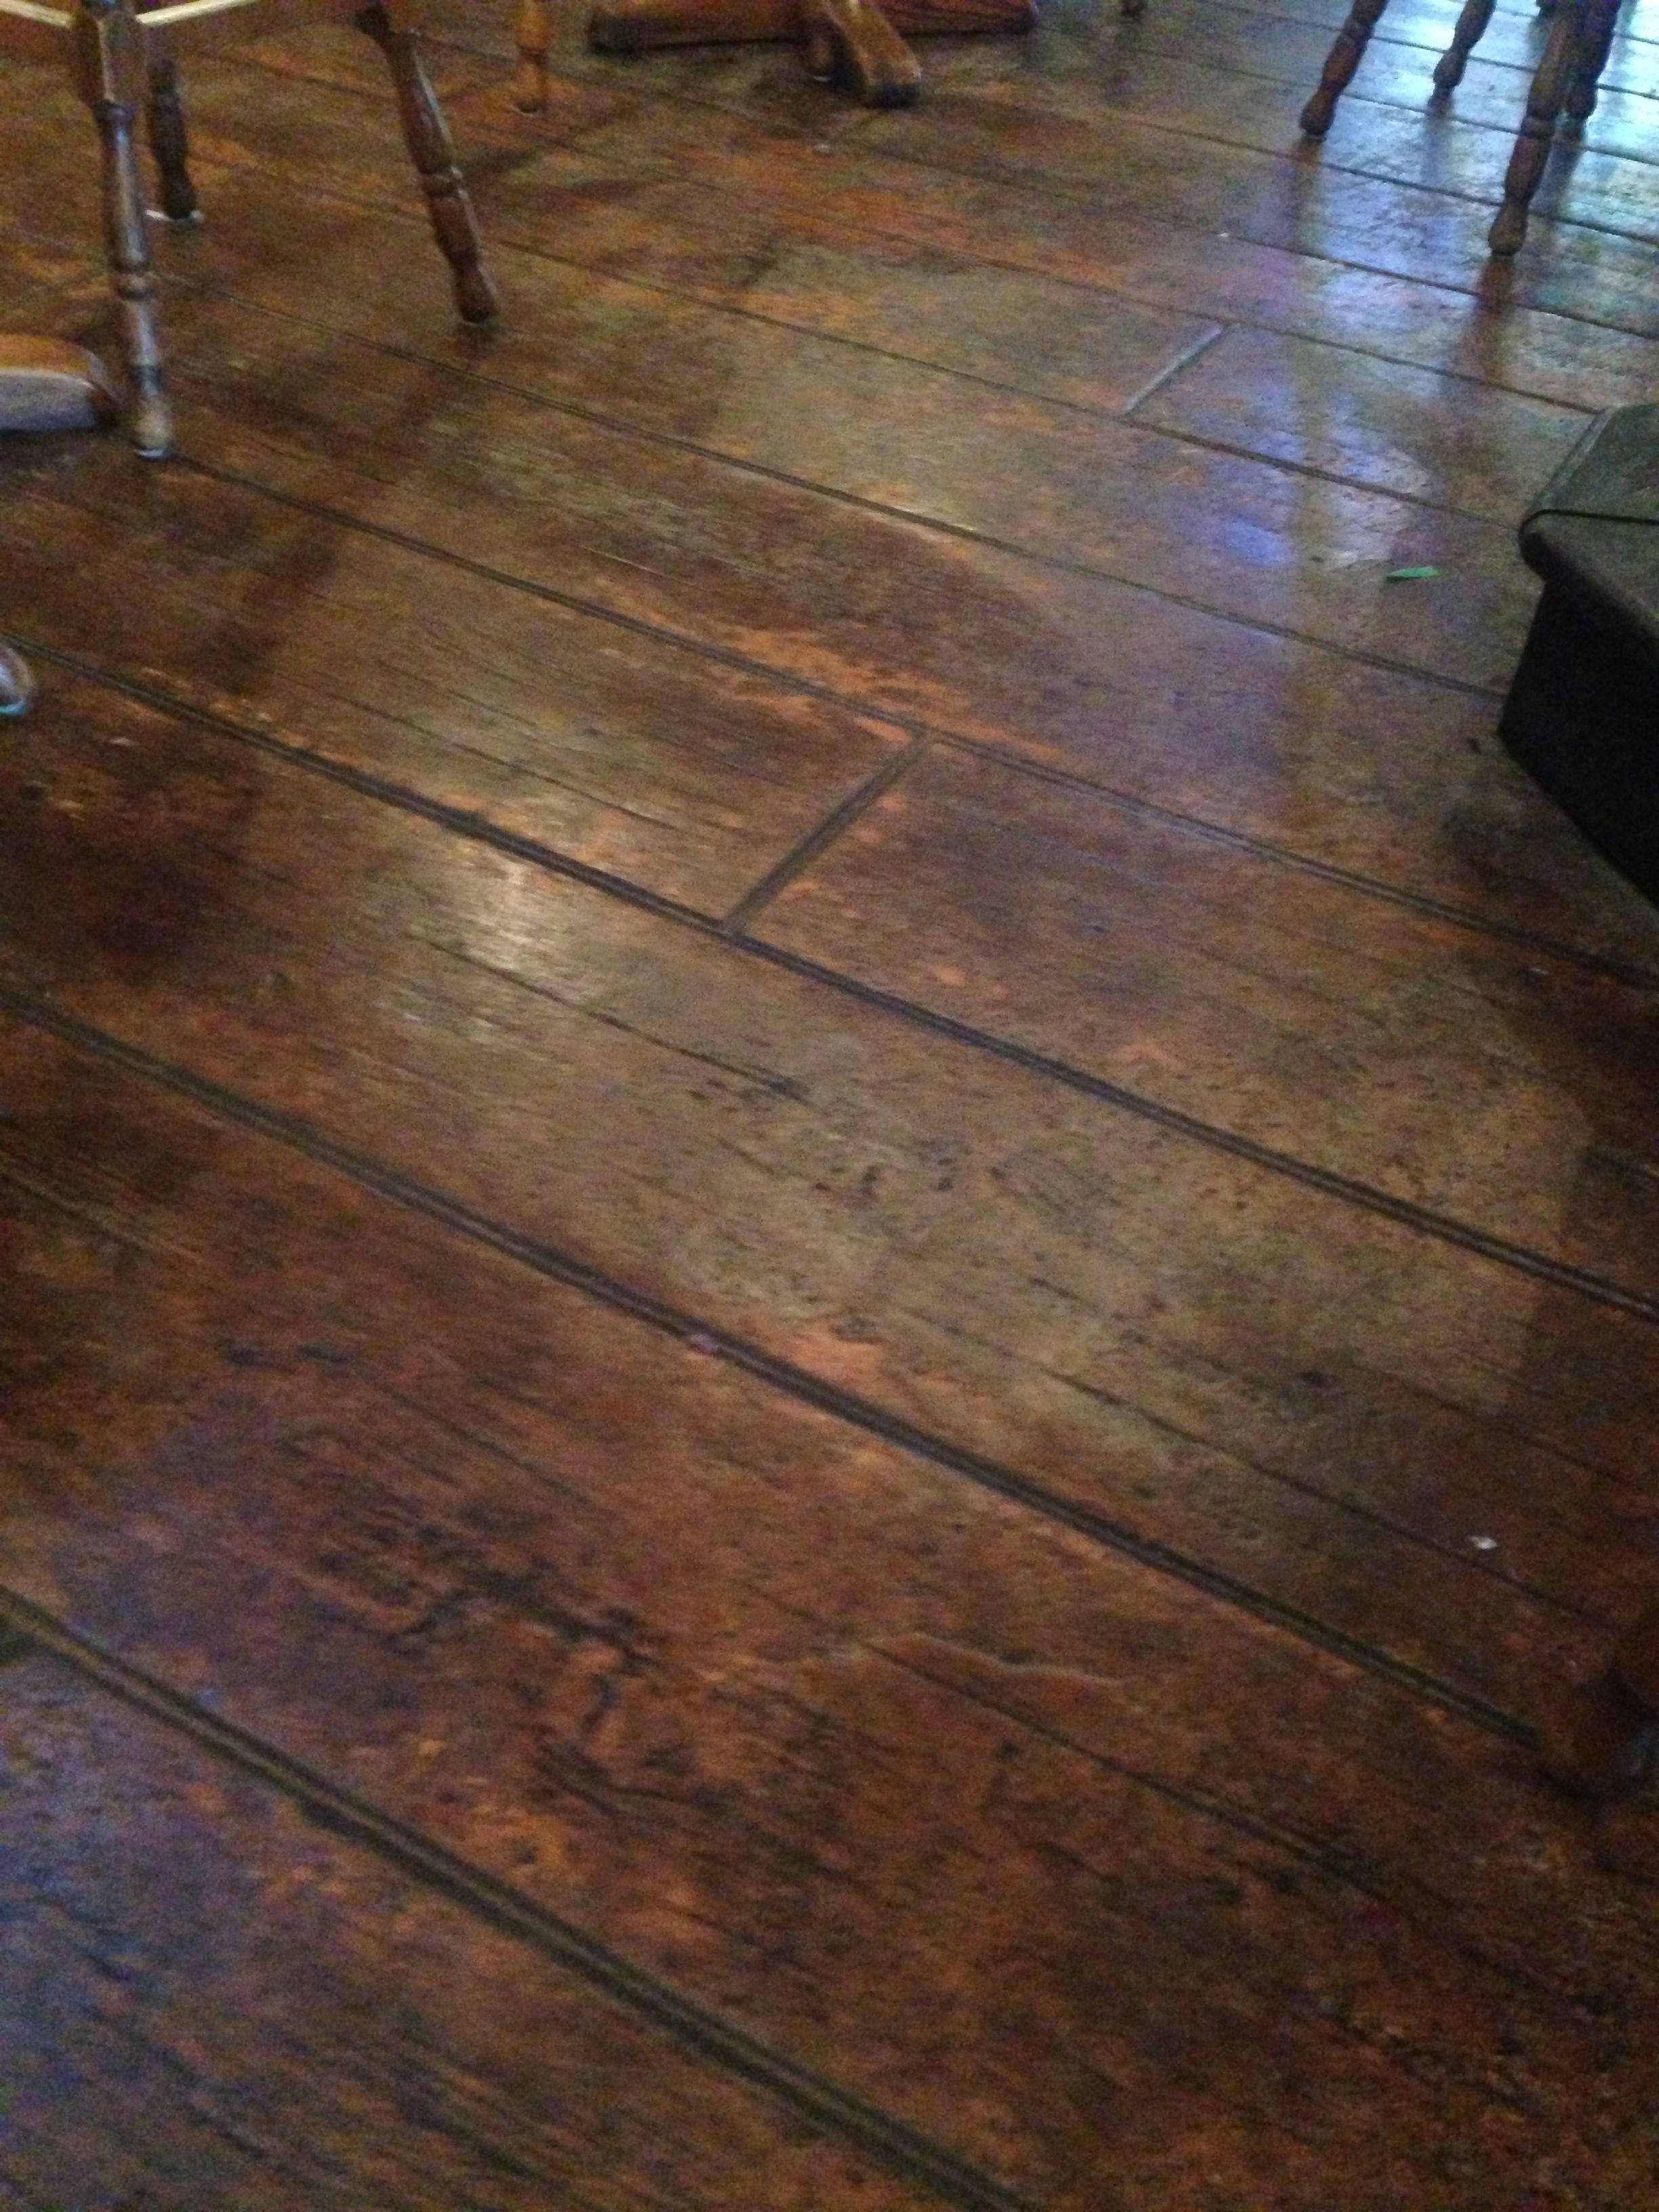 Images Of Stamped Concrete Patios: Stamped Concrete Floors